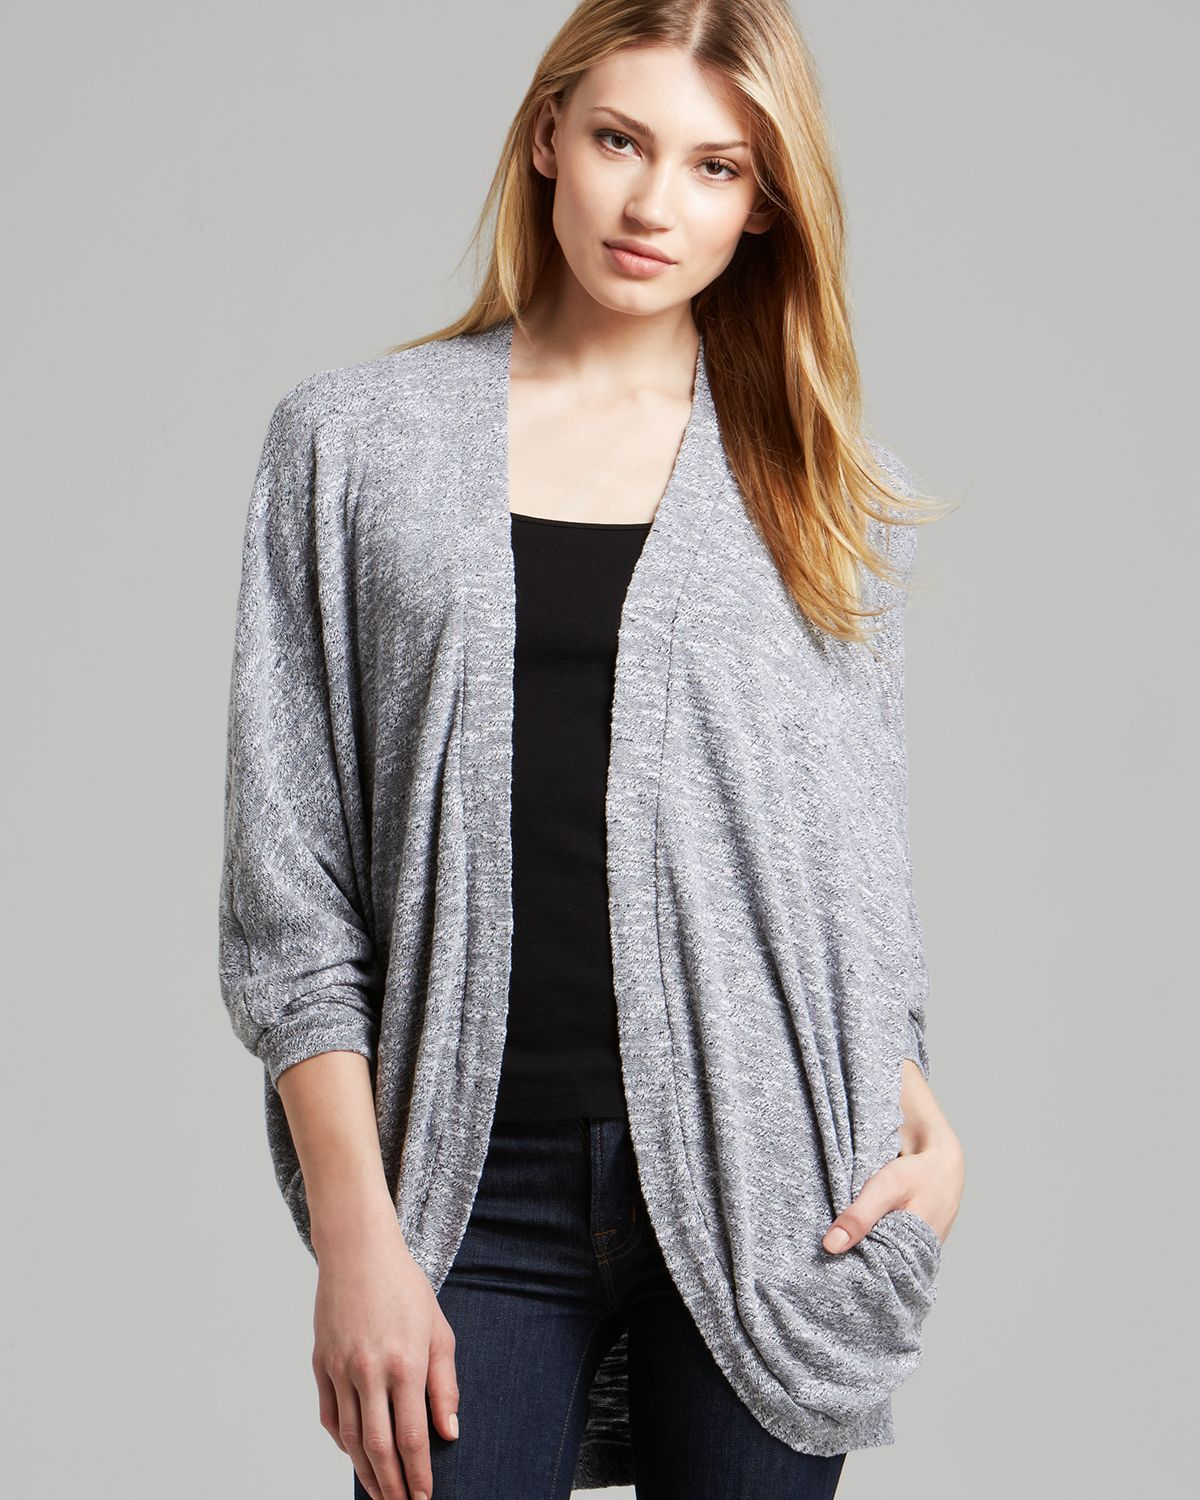 Three dots Cocoon Cardigan with Pockets in Gray | Lyst